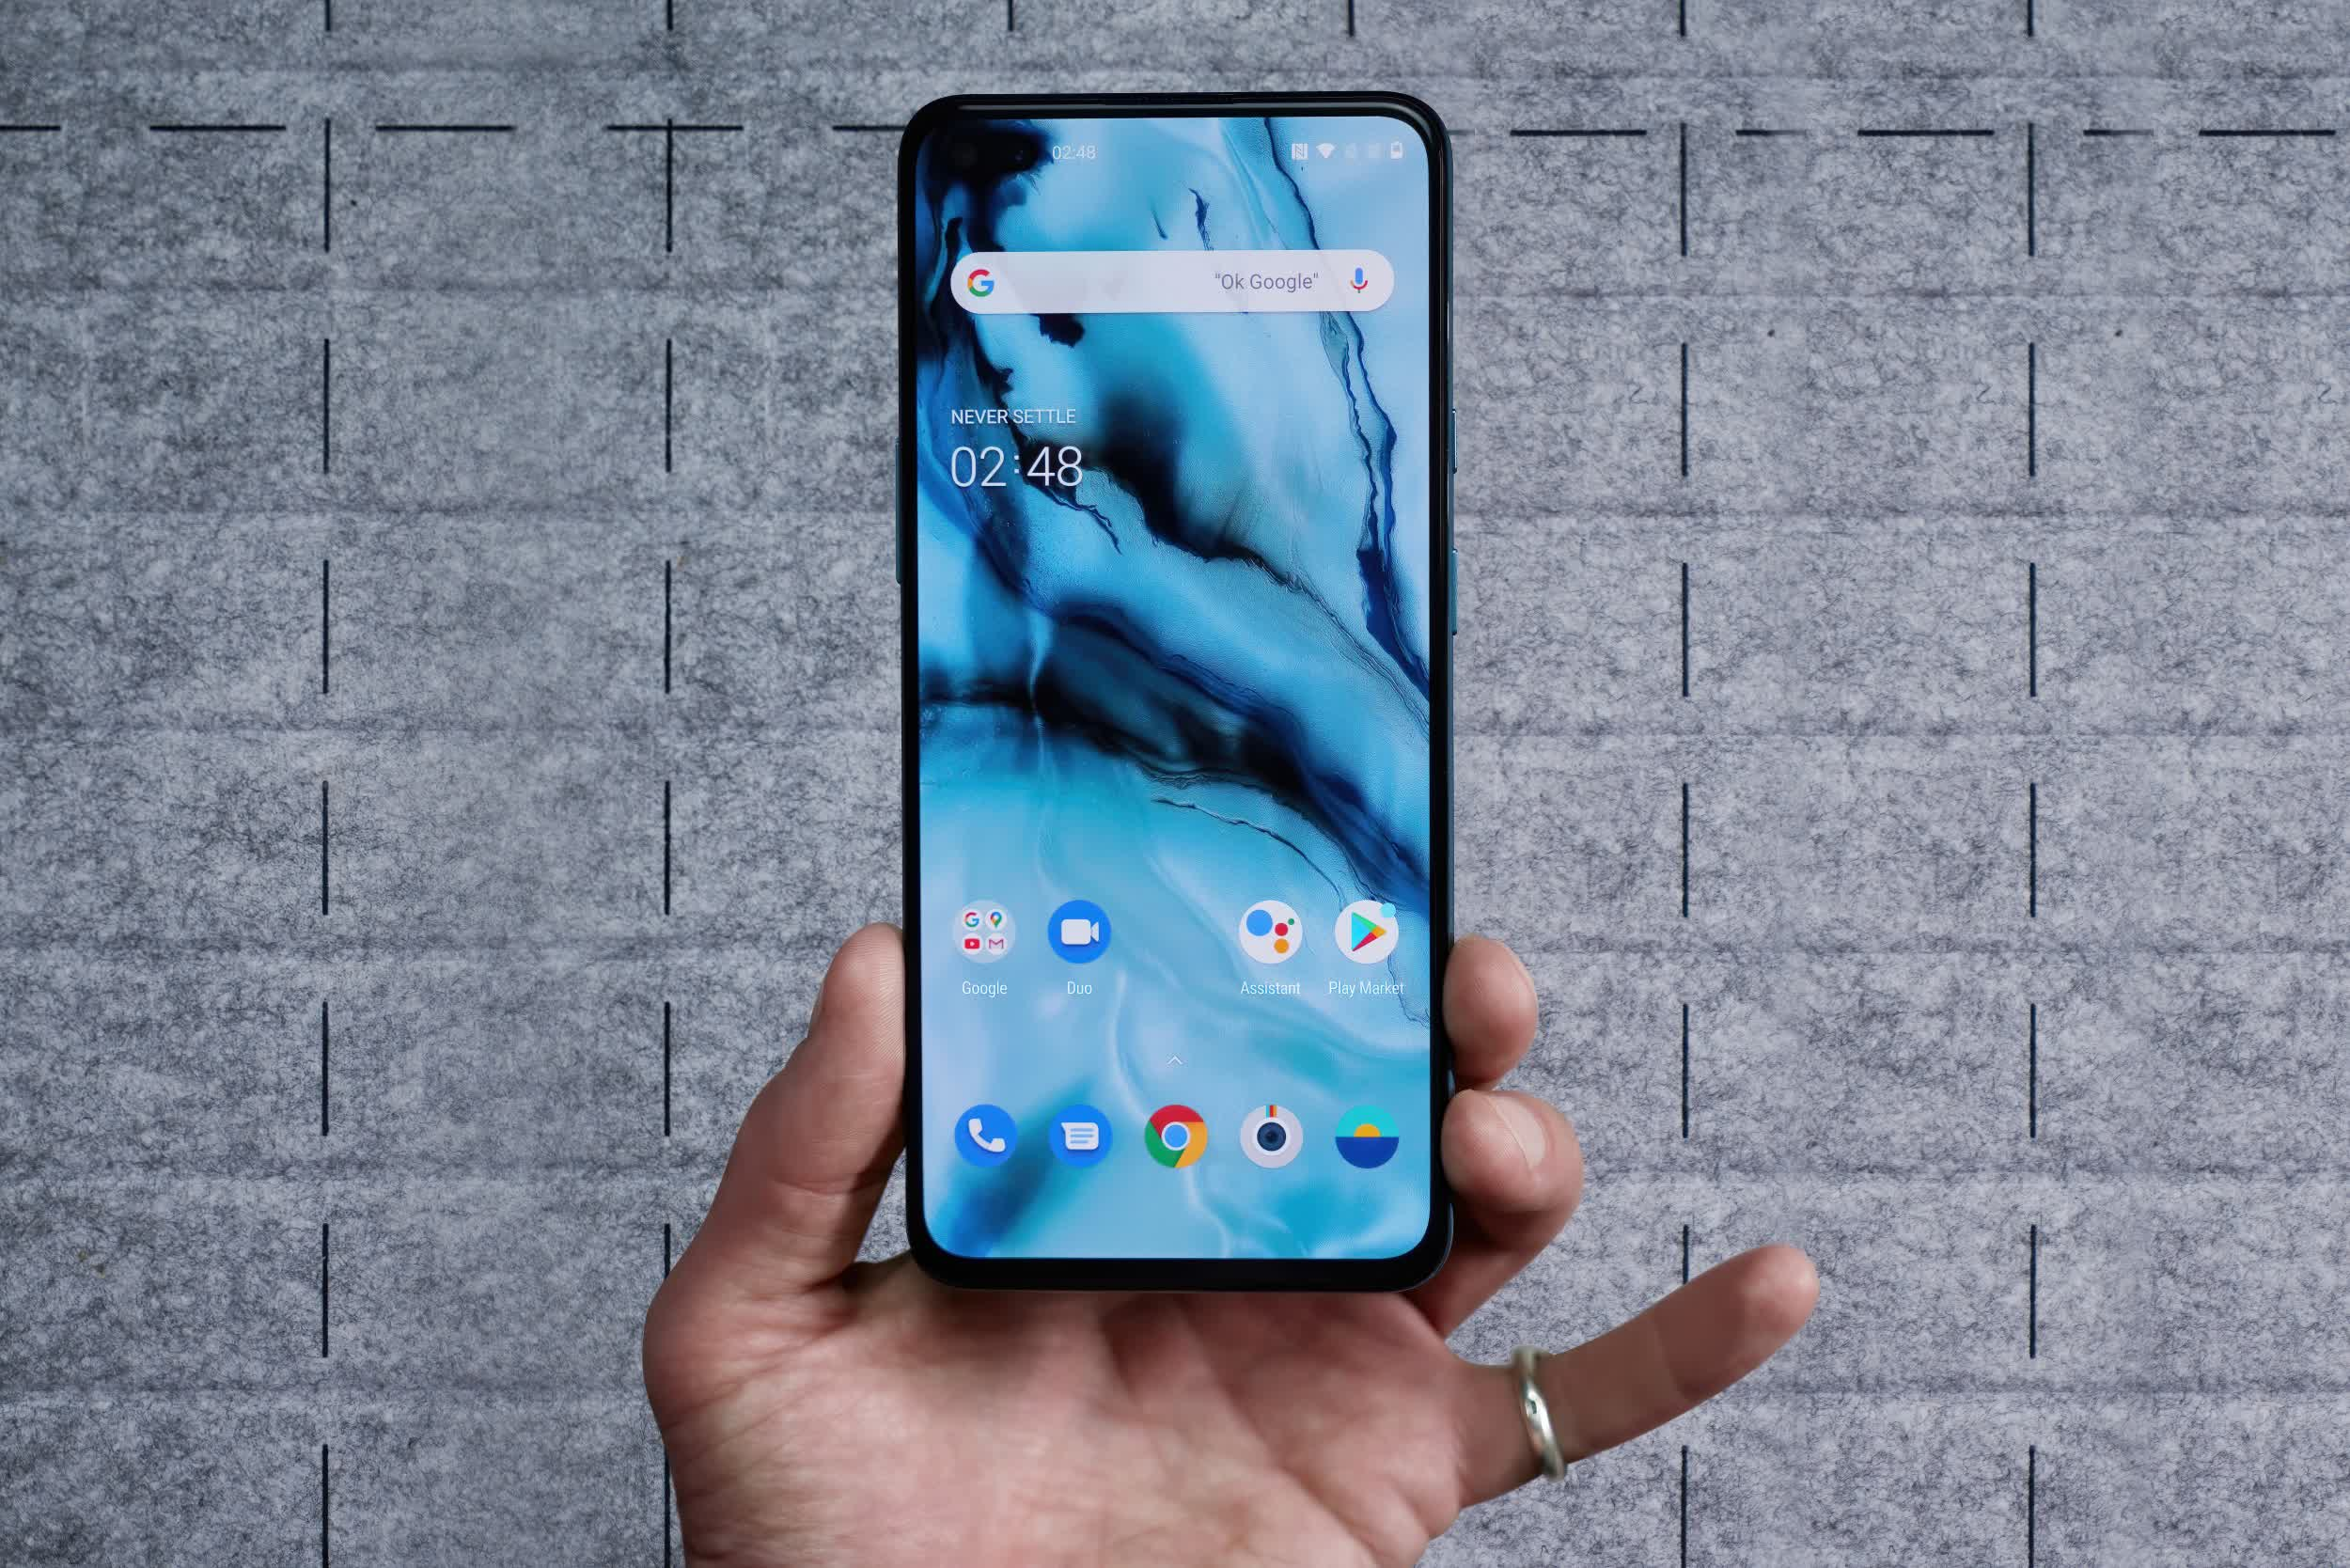 OnePlus 9 series expected to break cover at March 8 event alongside OnePlus Watch